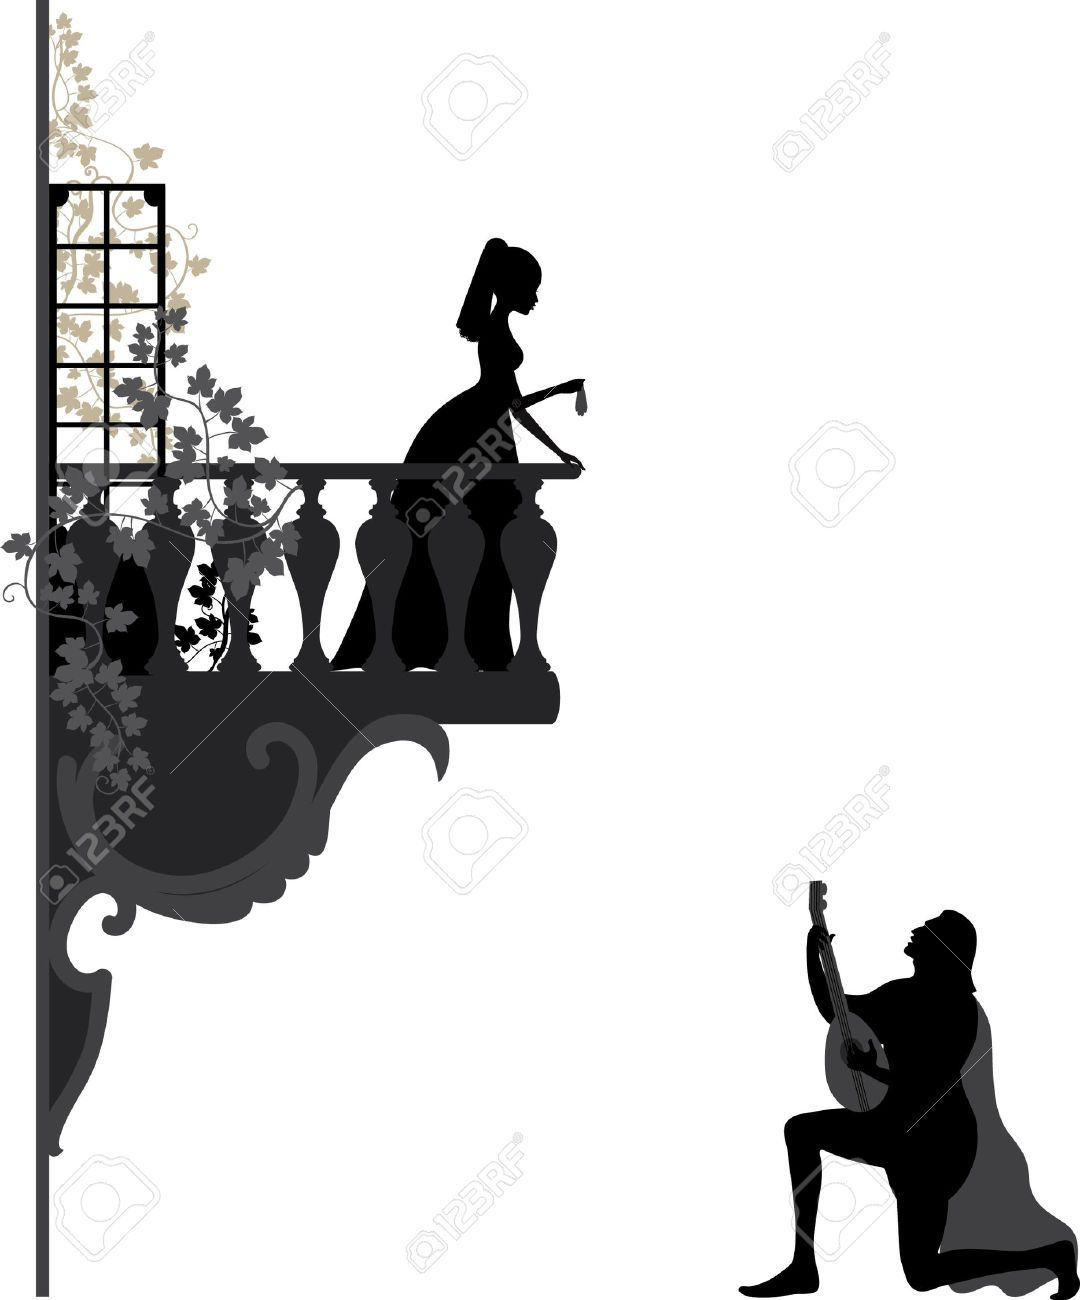 image result for silhouette of romeo and juliet engagement party rh pinterest co uk romeo and juliet clipart romeo and juliet balcony scene clipart